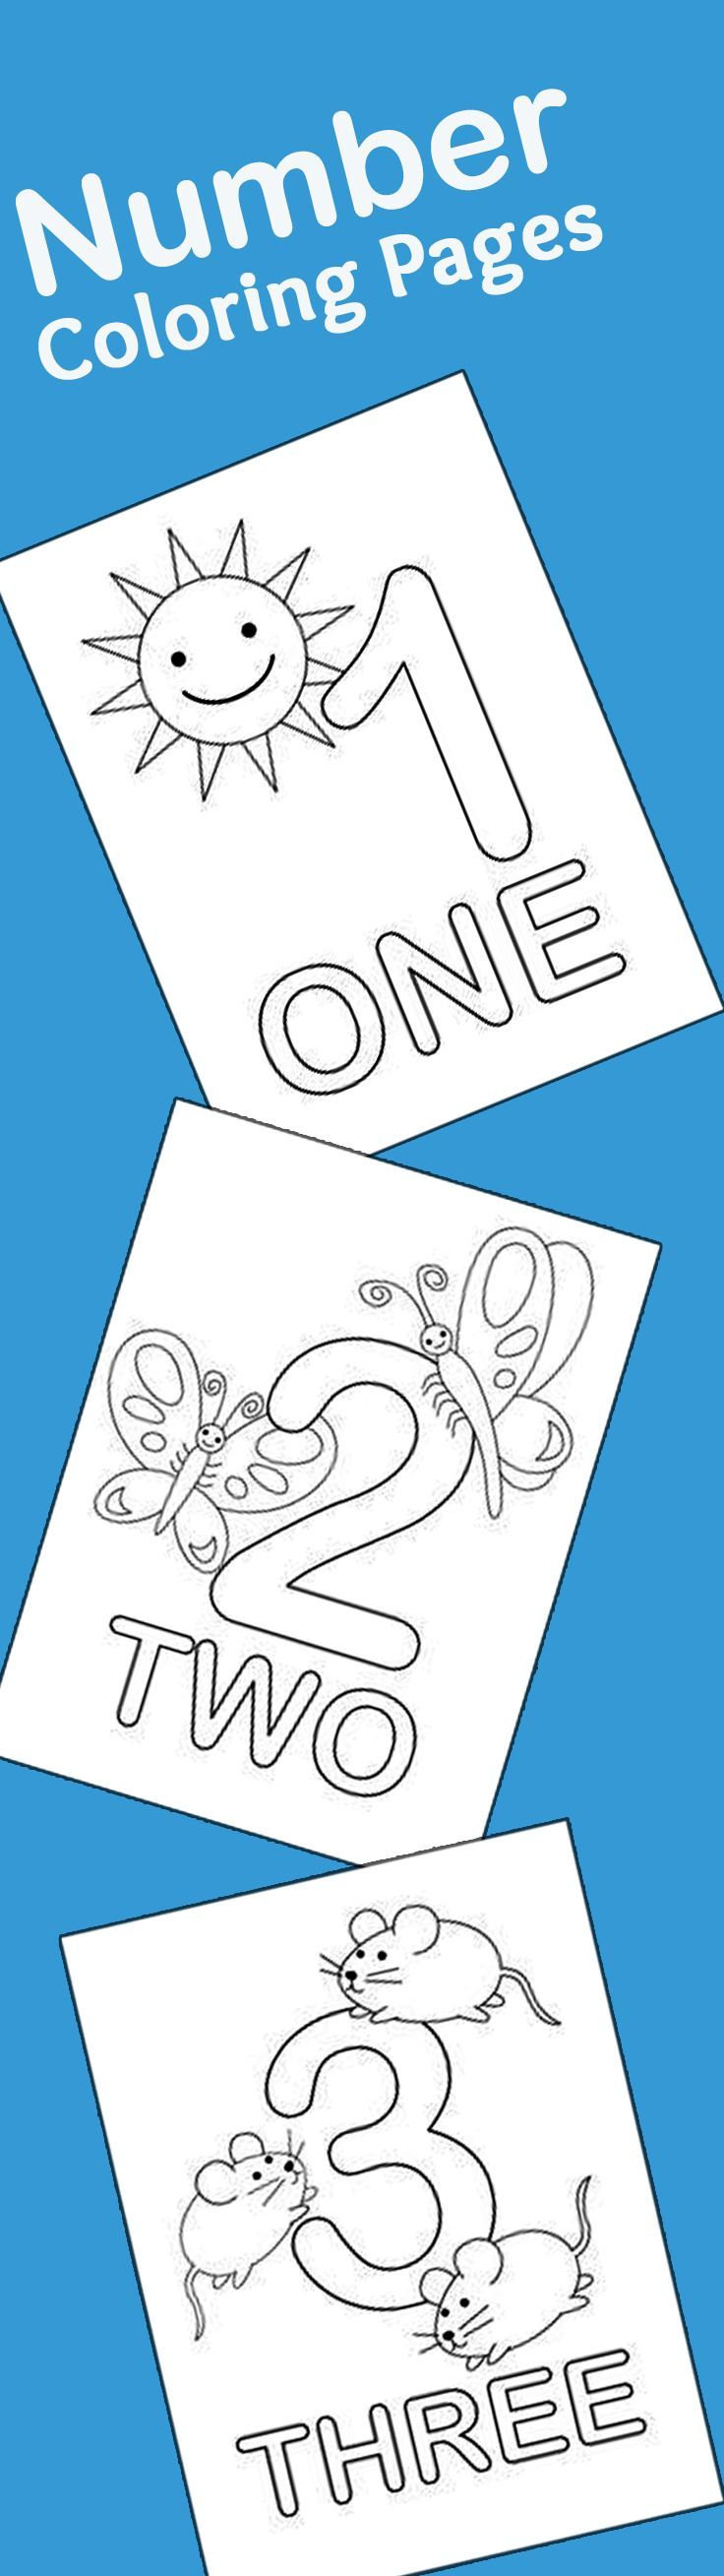 Online kid coloring games - 21 Easy To Learn Number Coloring Pages For Kids This Is A List Of The